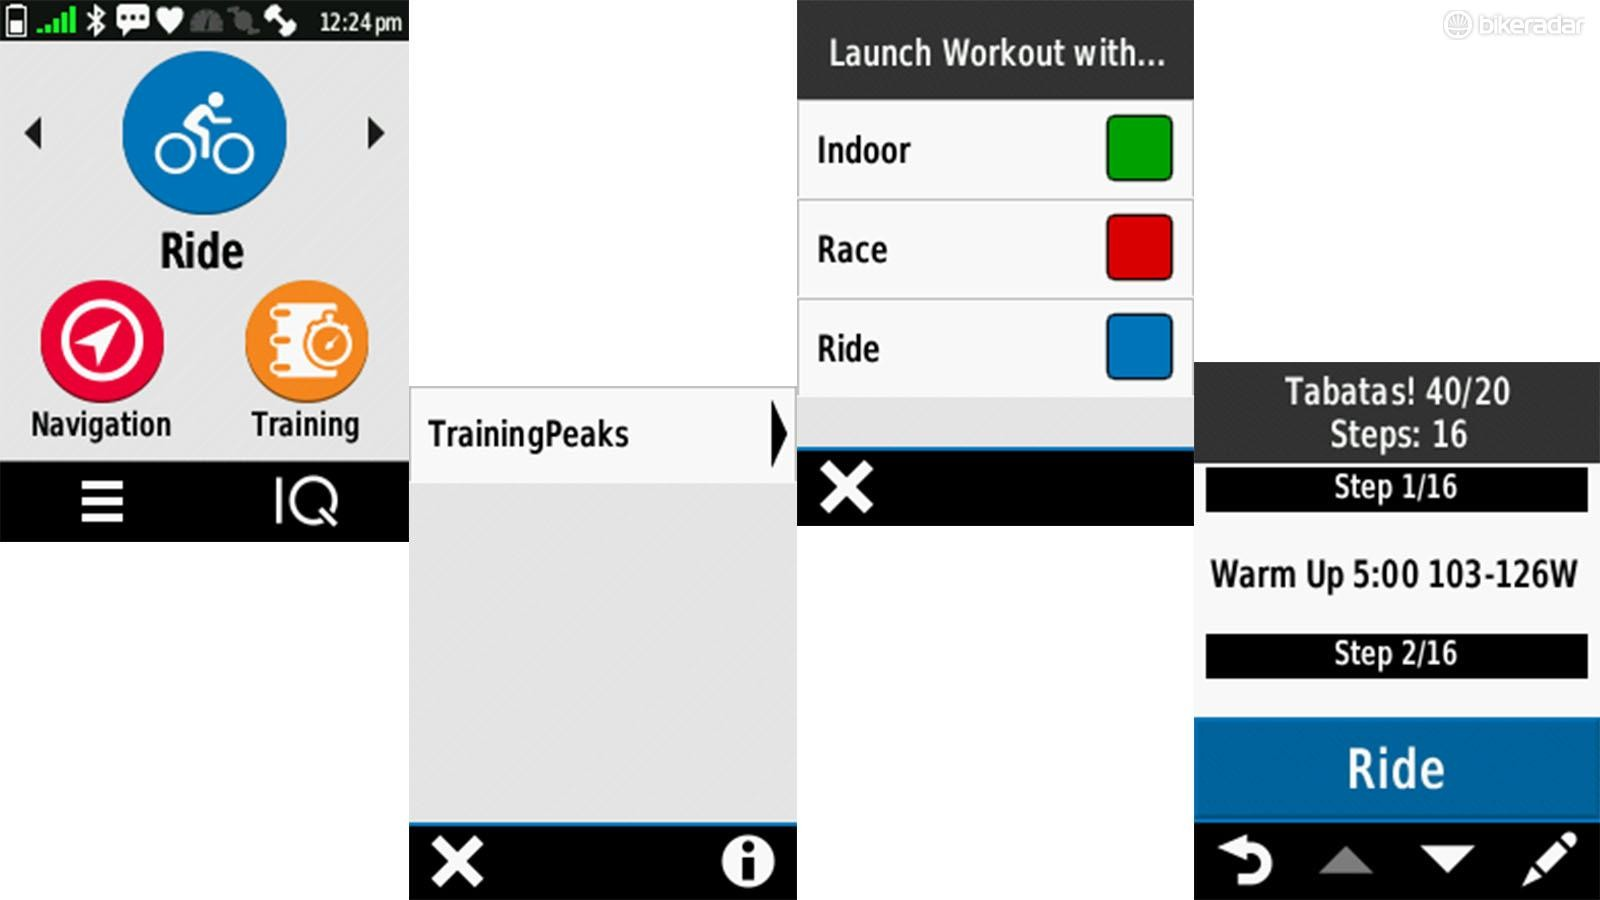 Once everything is paired, you can navigate to your daily workout pretty easily